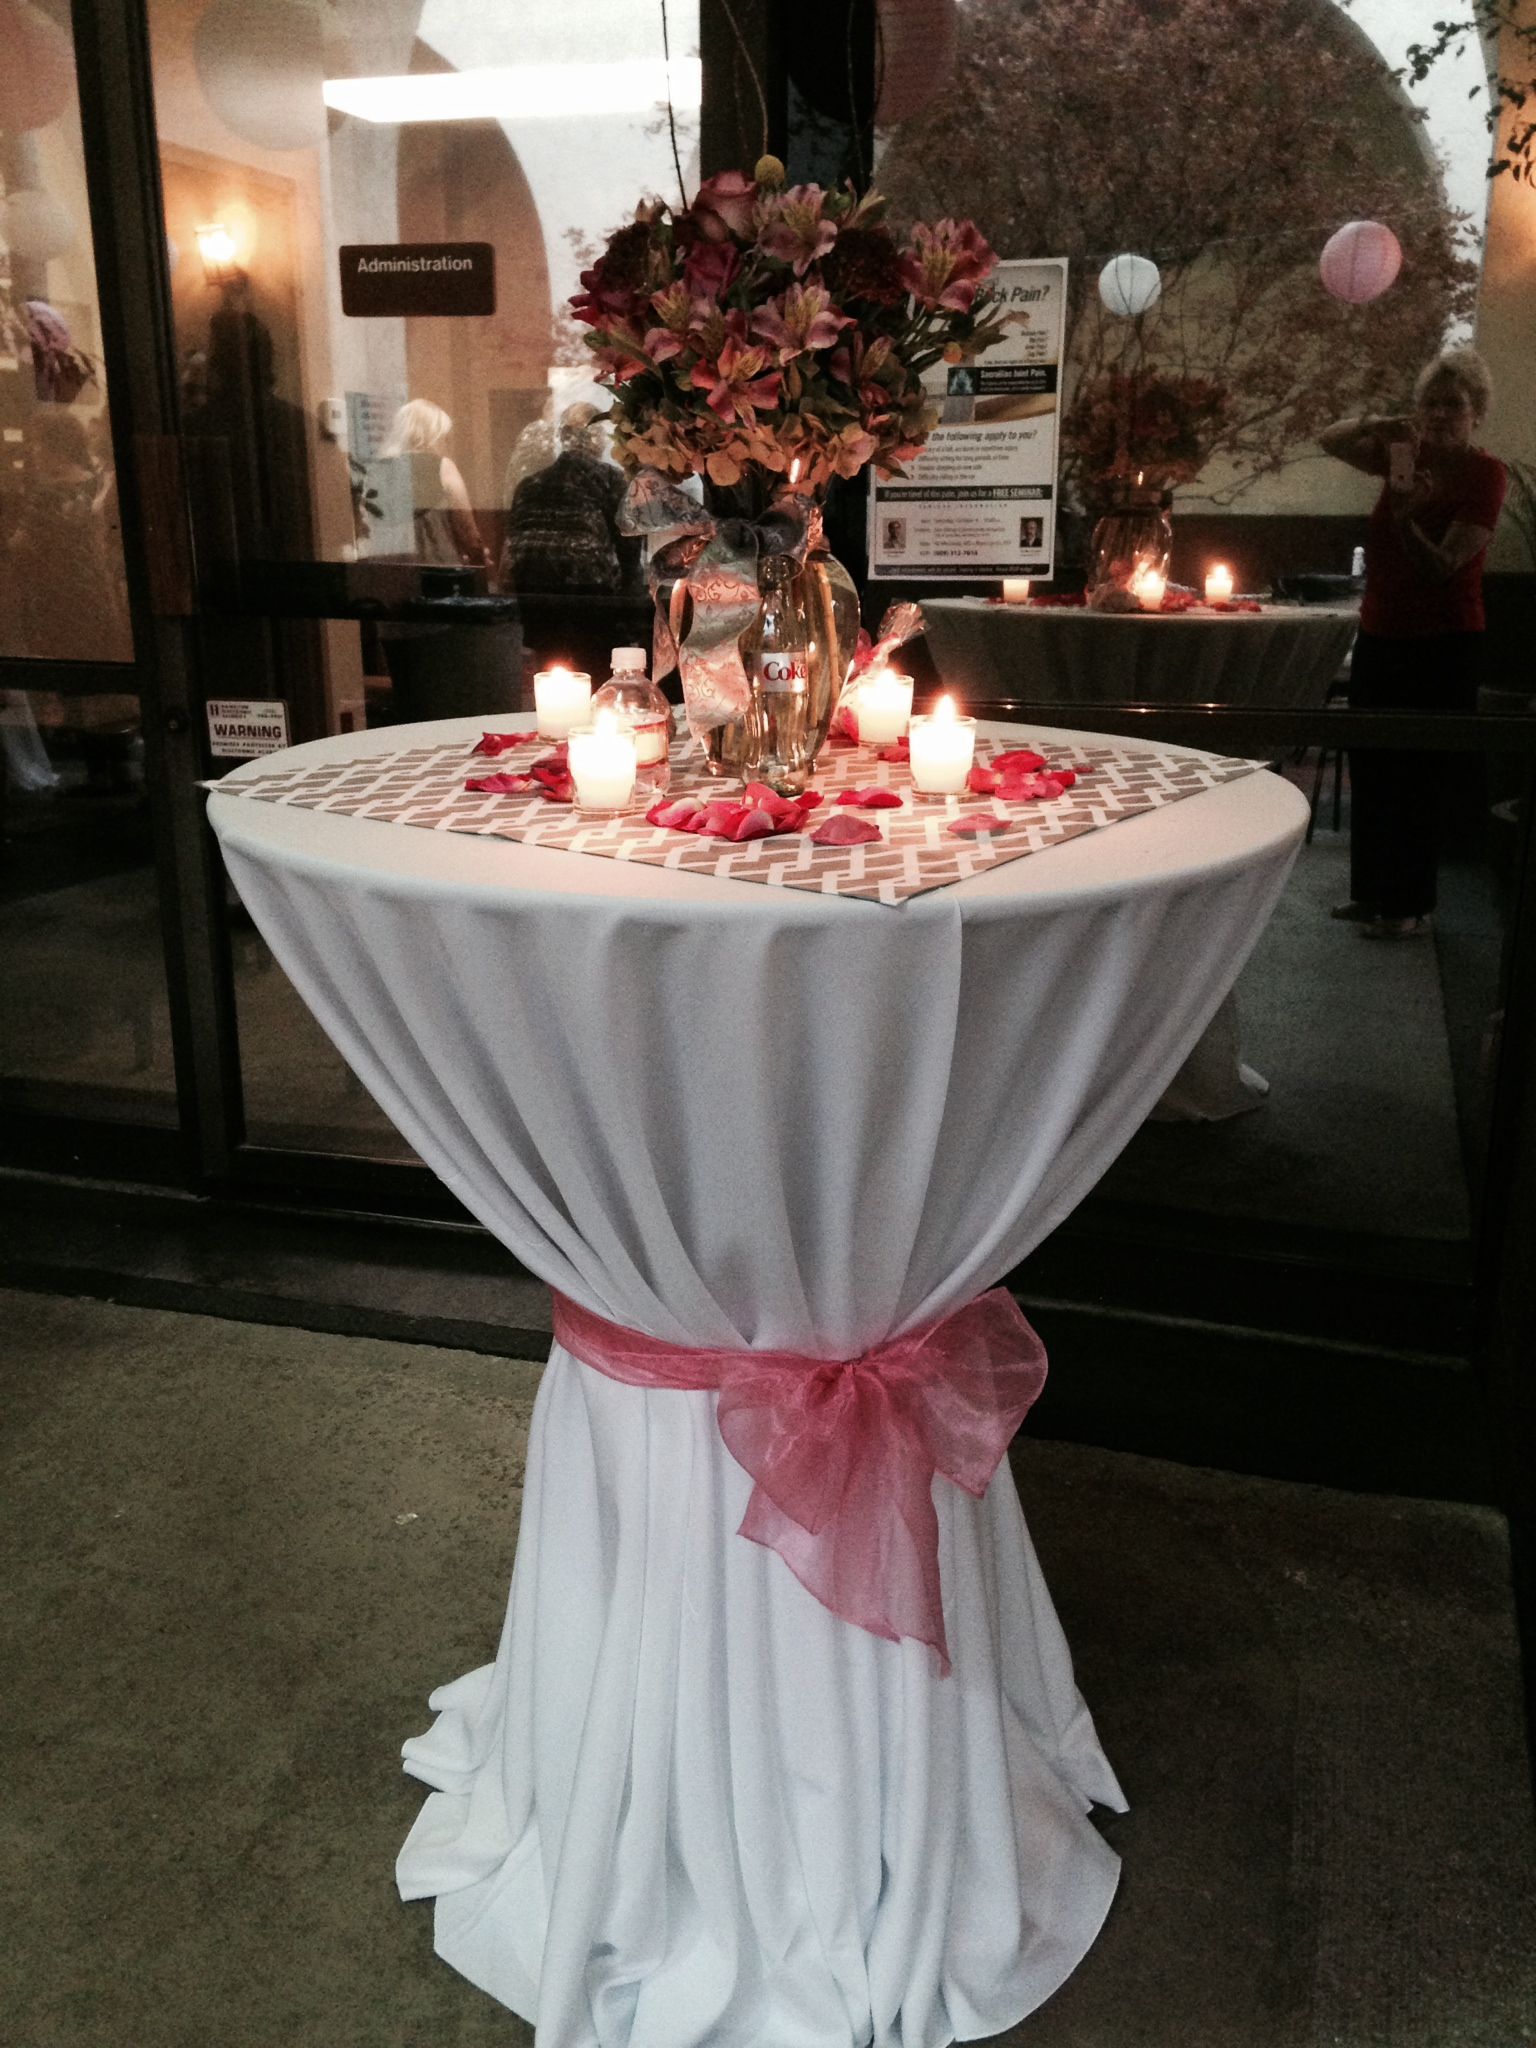 A table with a white tablecloth and pink ribbon with four lit candles on top surrounded by rose petals circling around a bouquet